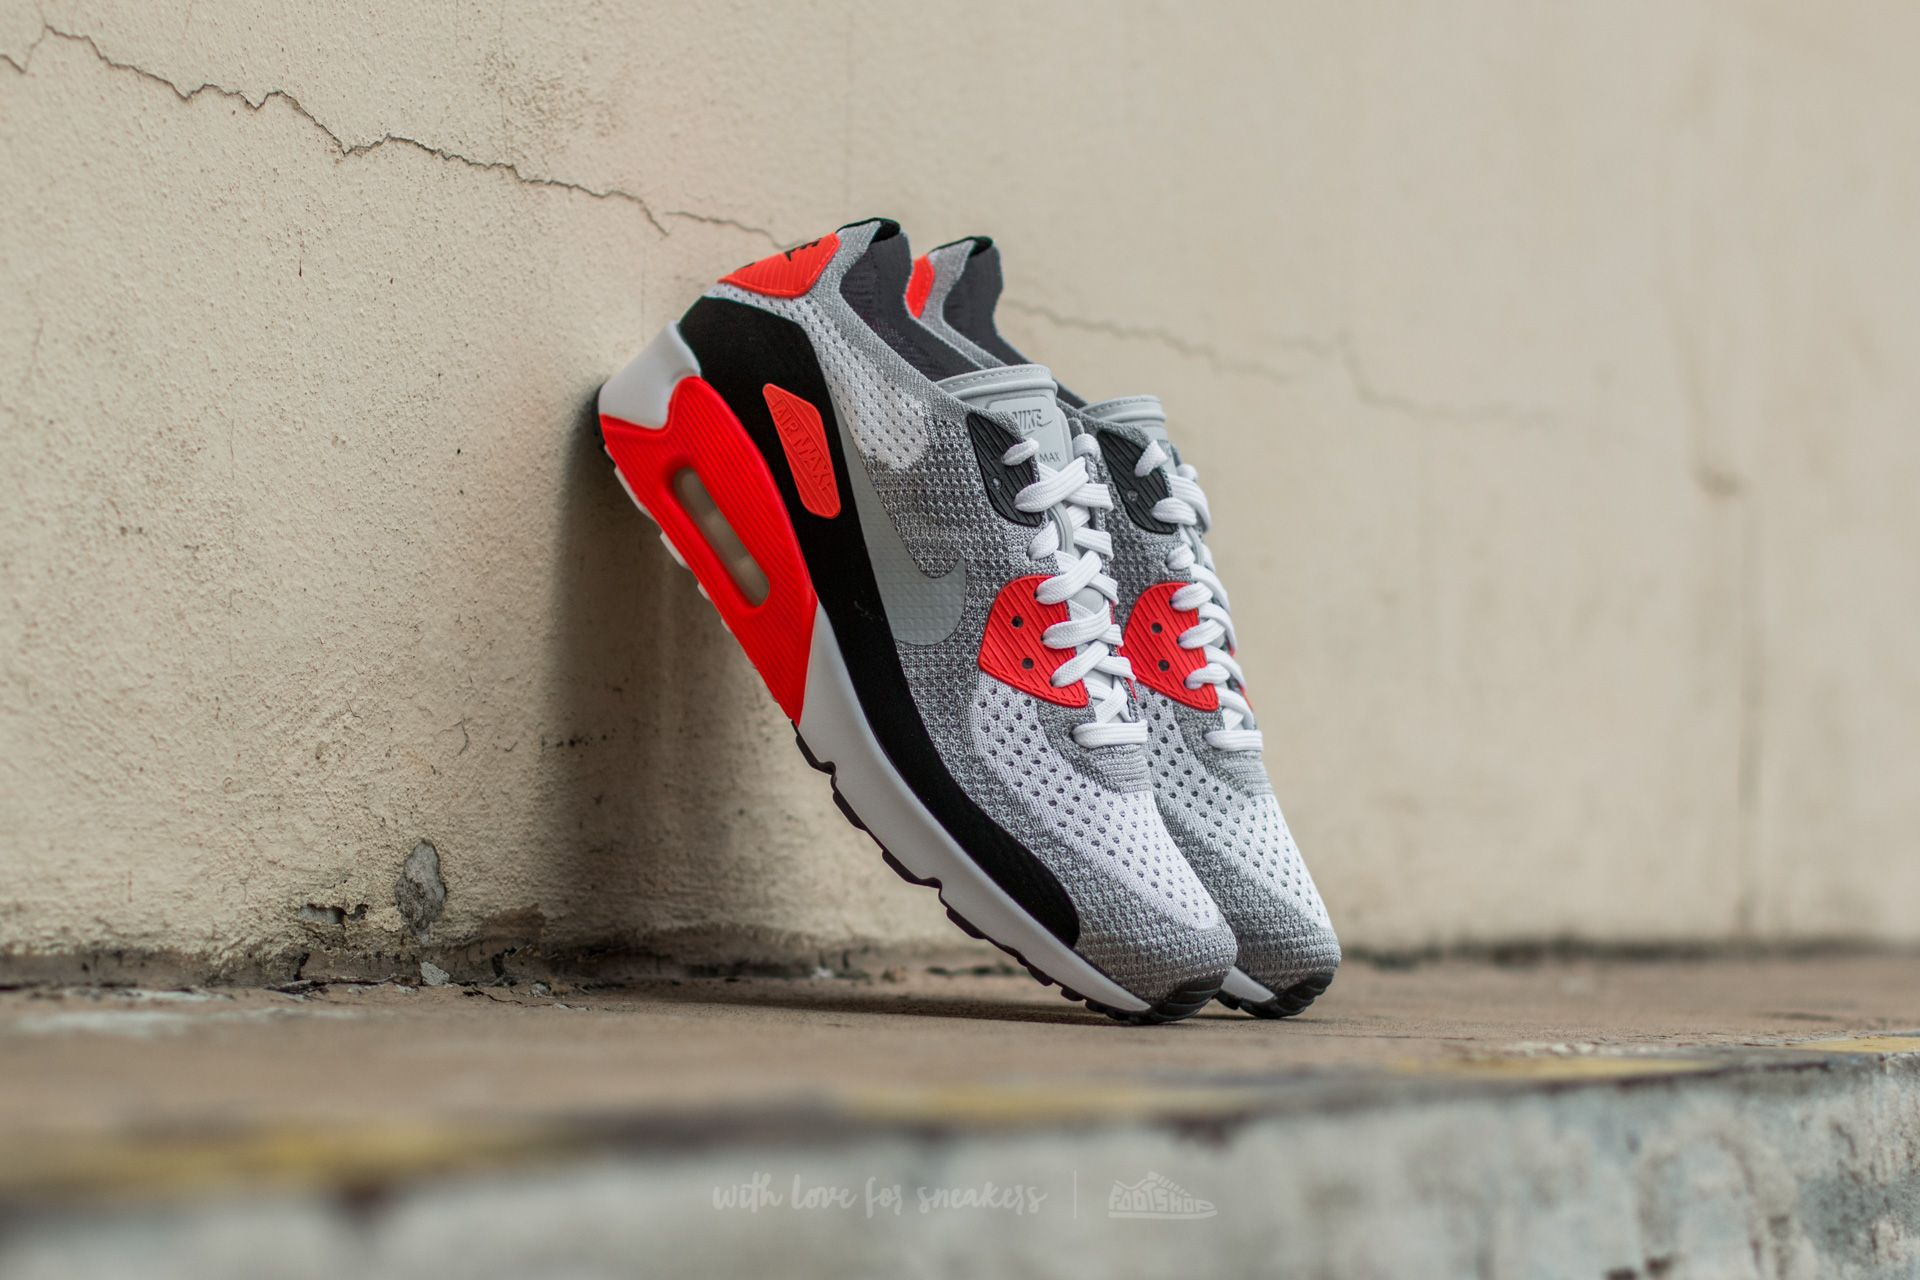 Nike Air Max 90 Ultra 2.0 Flyknit White Wolf Grey Bright Crimson | Footshop